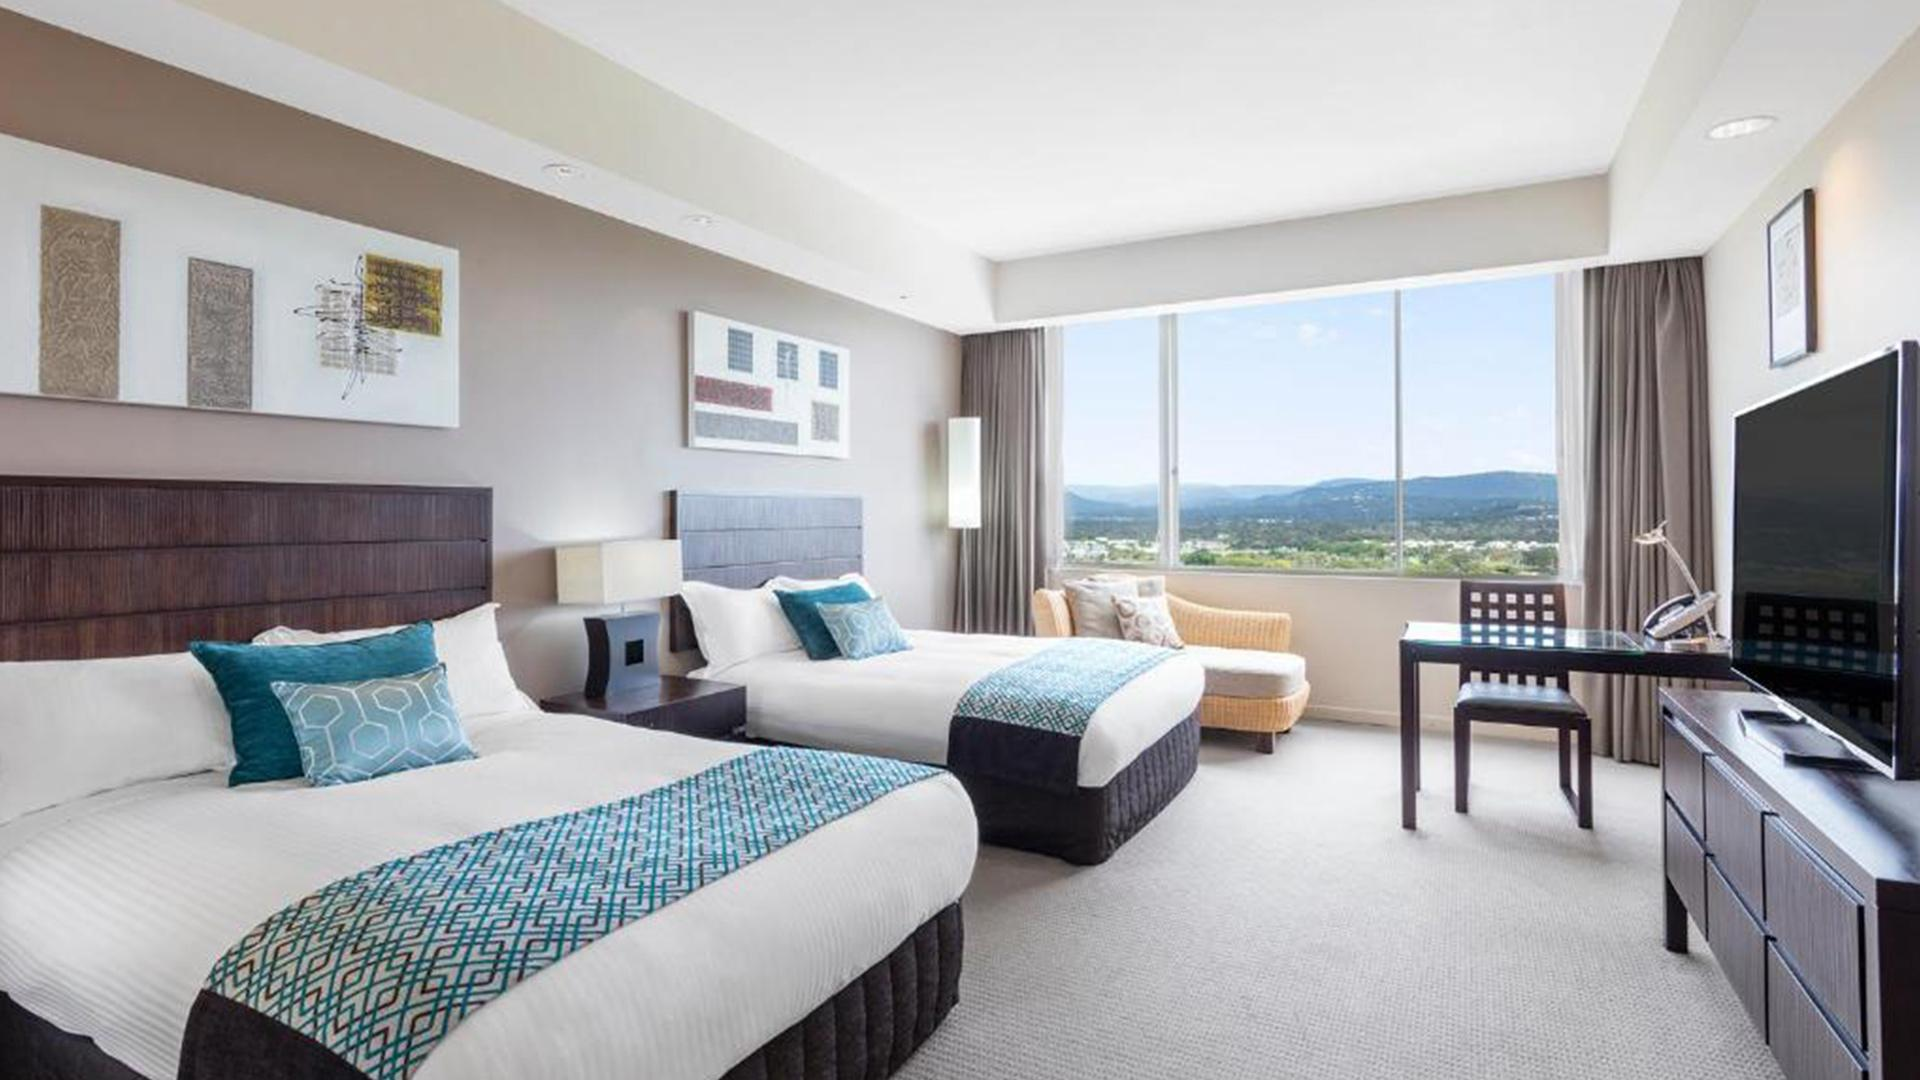 Executive Twin Room image 1 at RACV Royal Pines Resort by City of Gold Coast, Queensland, Australia